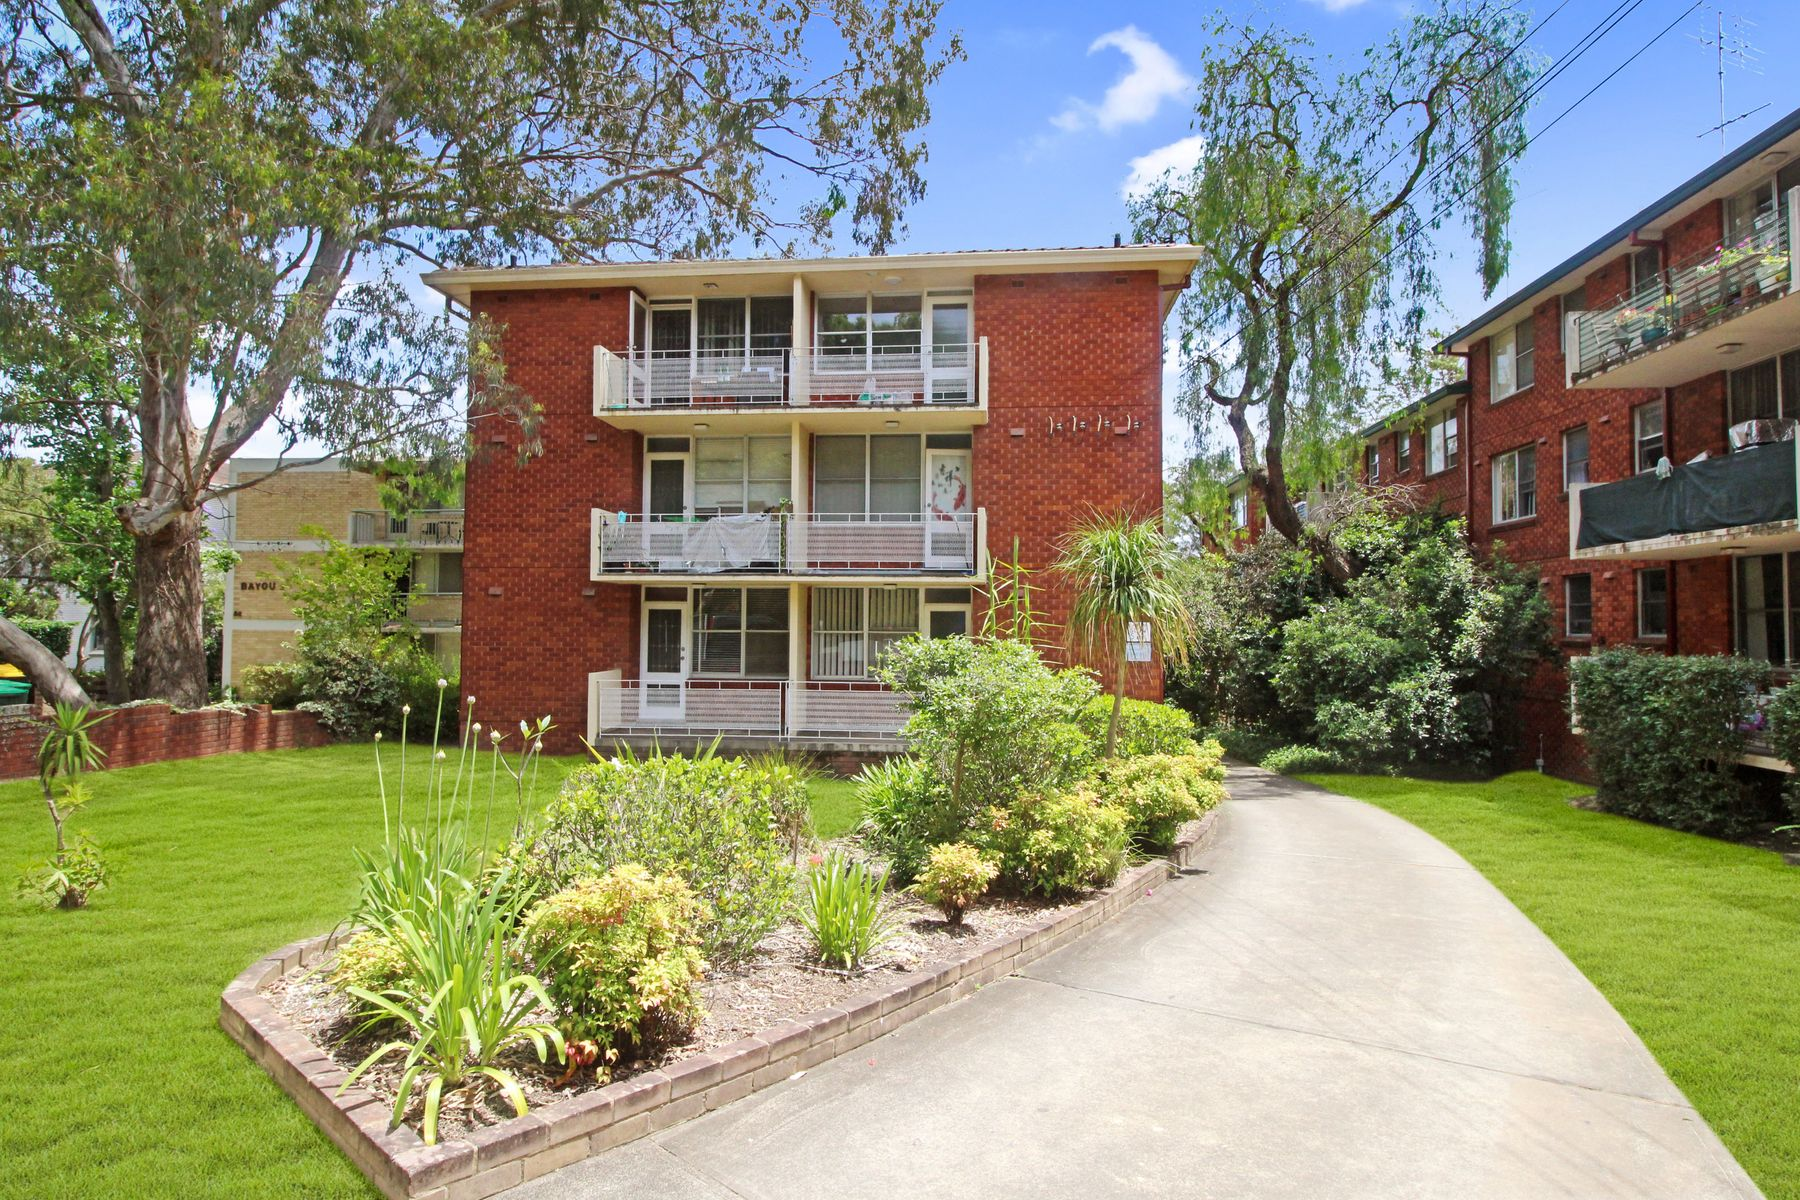 14/54 Meadow Crescent, Meadowbank, NSW 2114